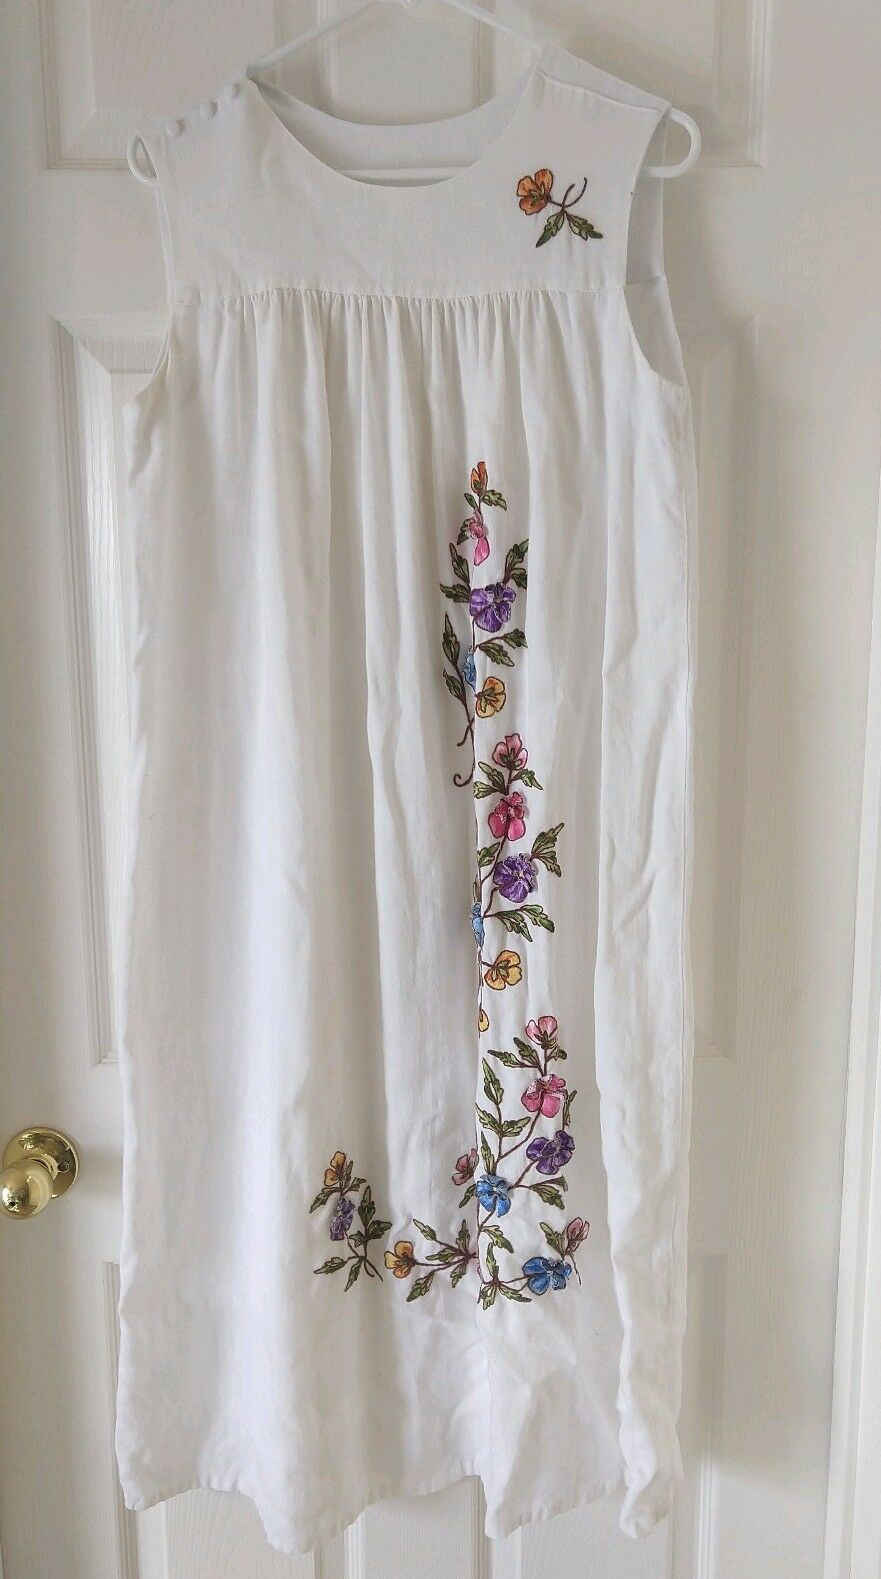 Vintage 70s White Linen Muumuu with colorful Embroidered Flowers Buttons Hippie